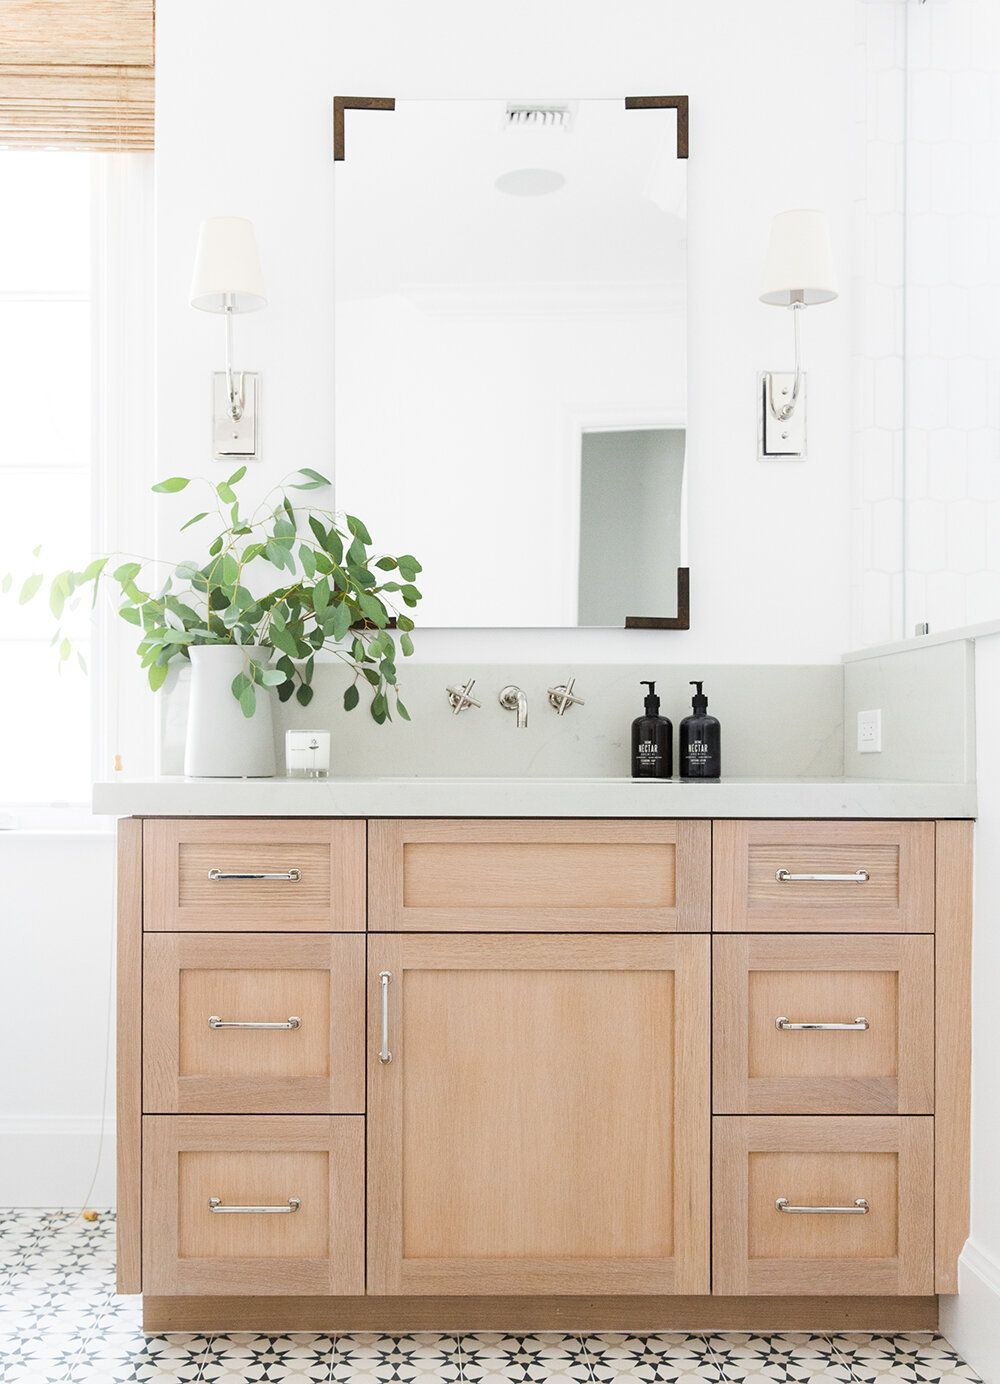 How To Choose The Right Mirror For Your Space Studio Mcgee In 2020 Pretty Bathrooms Large Bathroom Remodel Design Your Own Bathroom